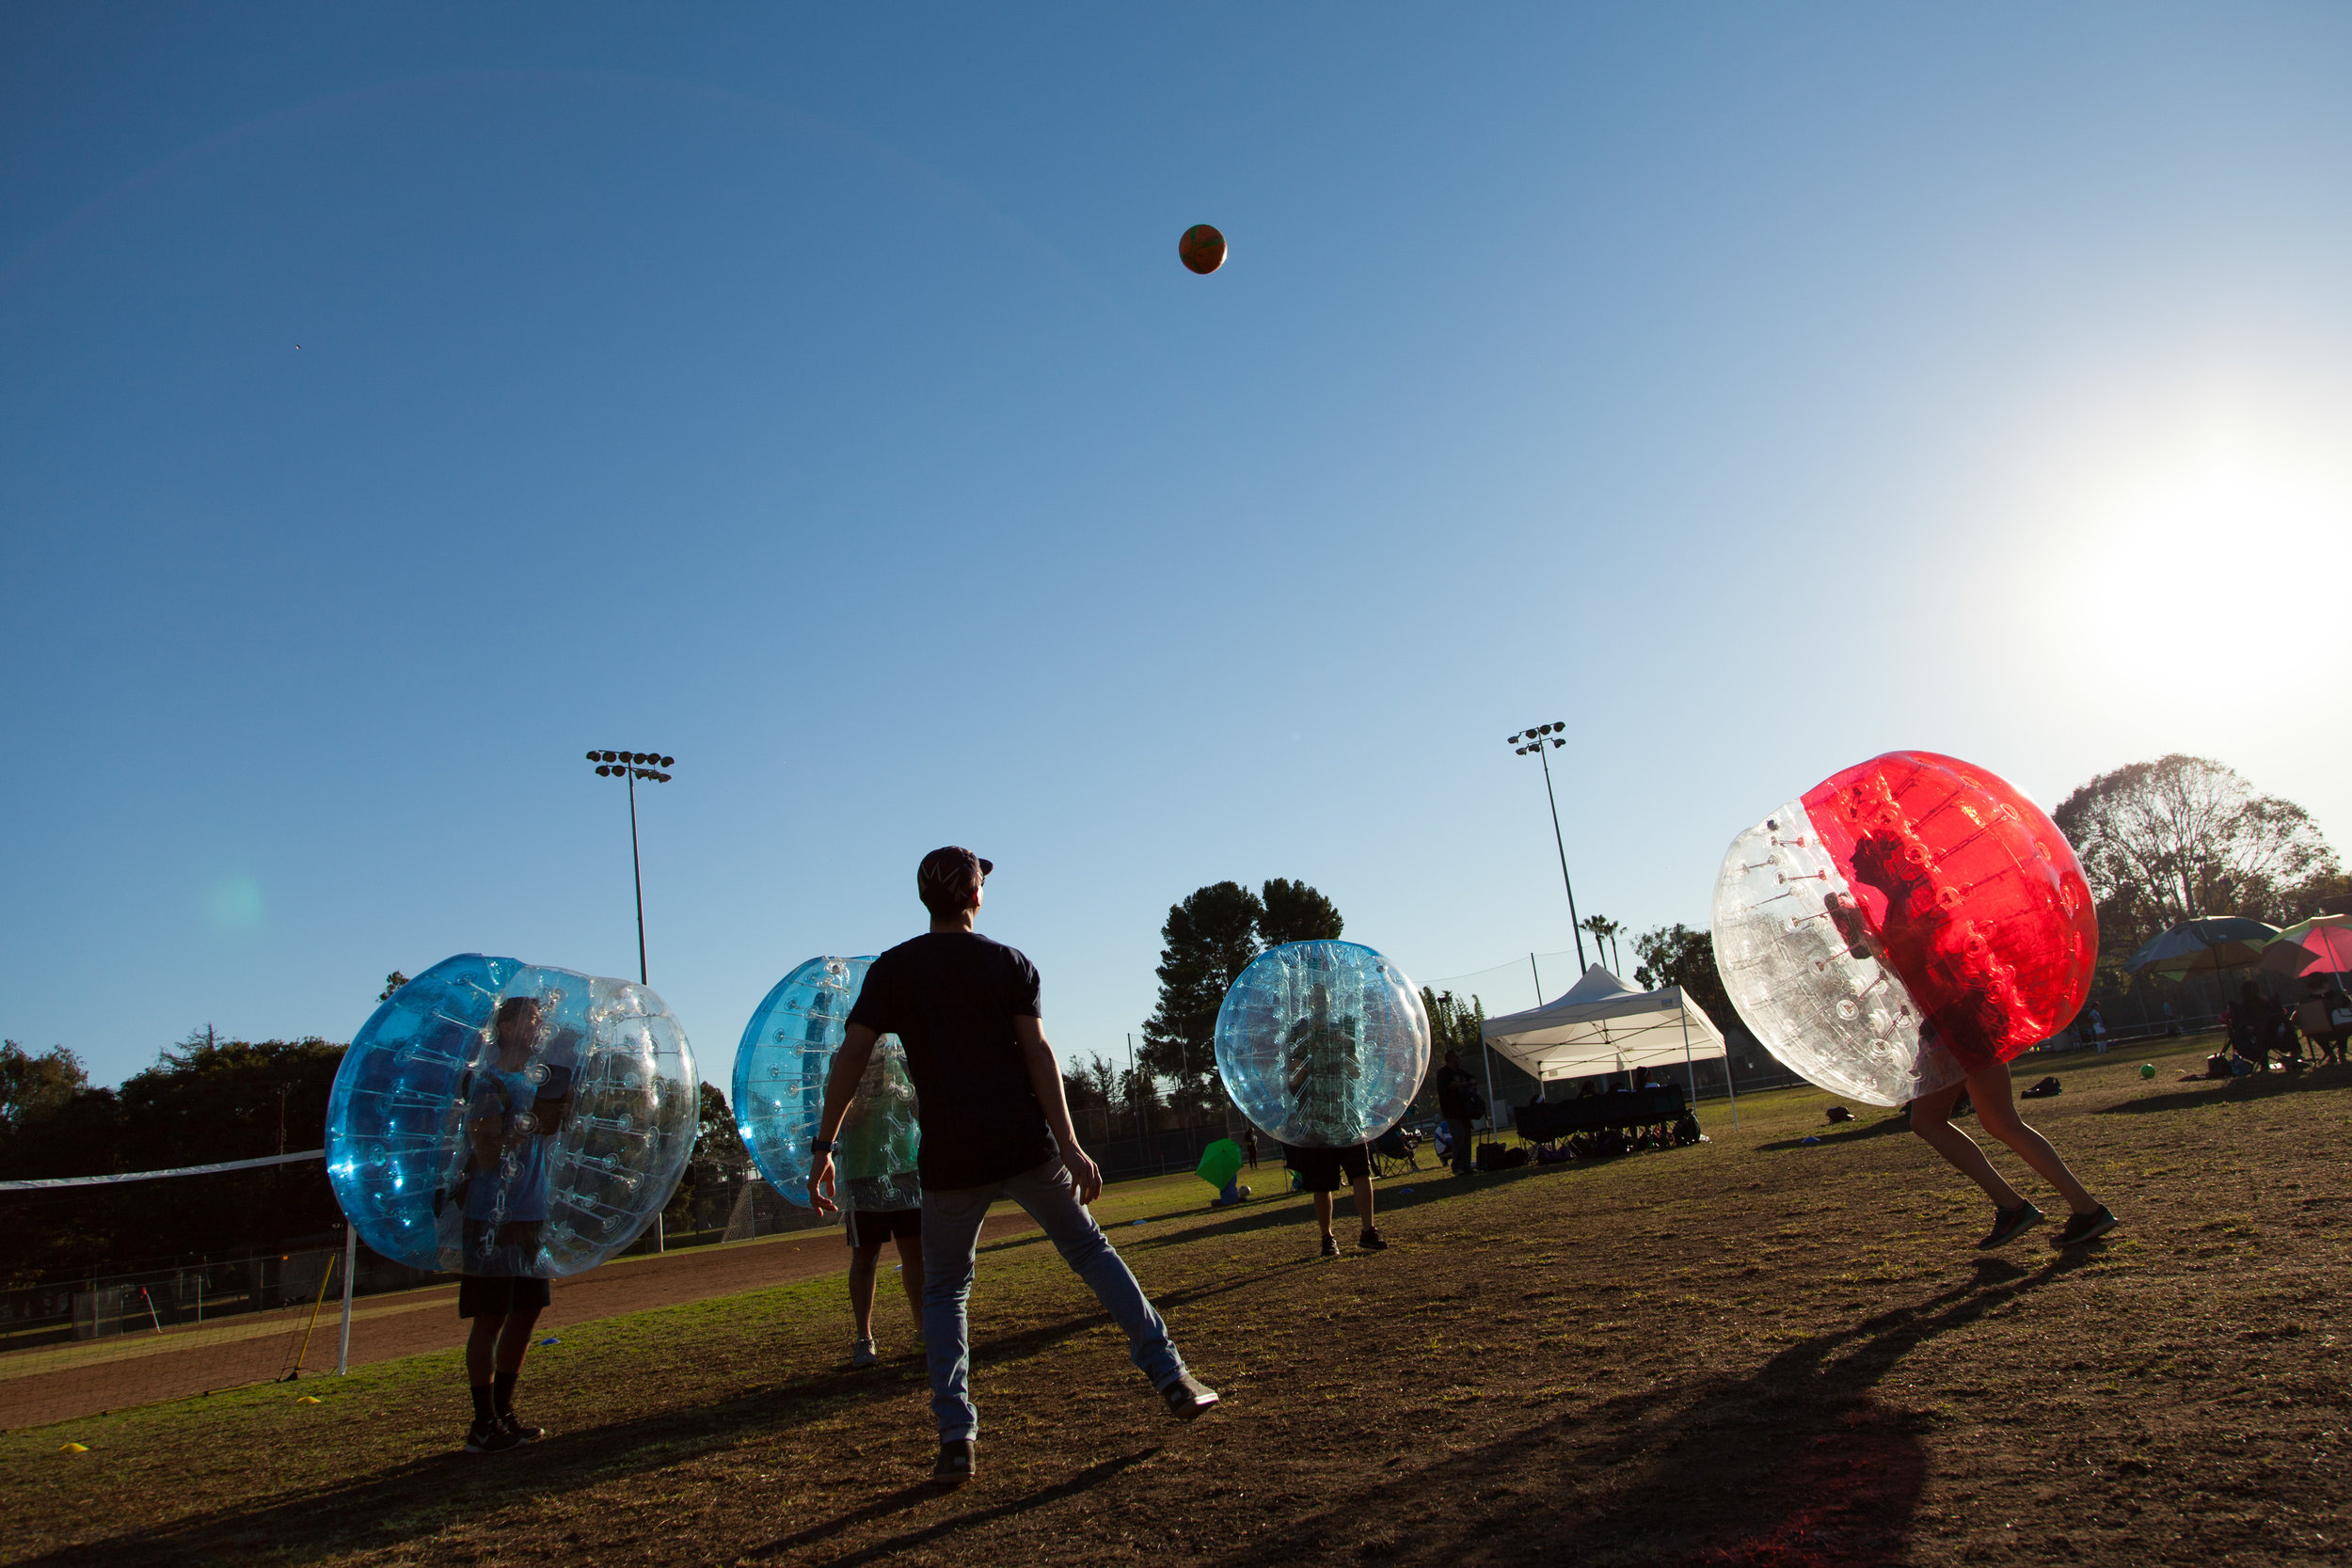 Bubble soccer exercise is a real workout